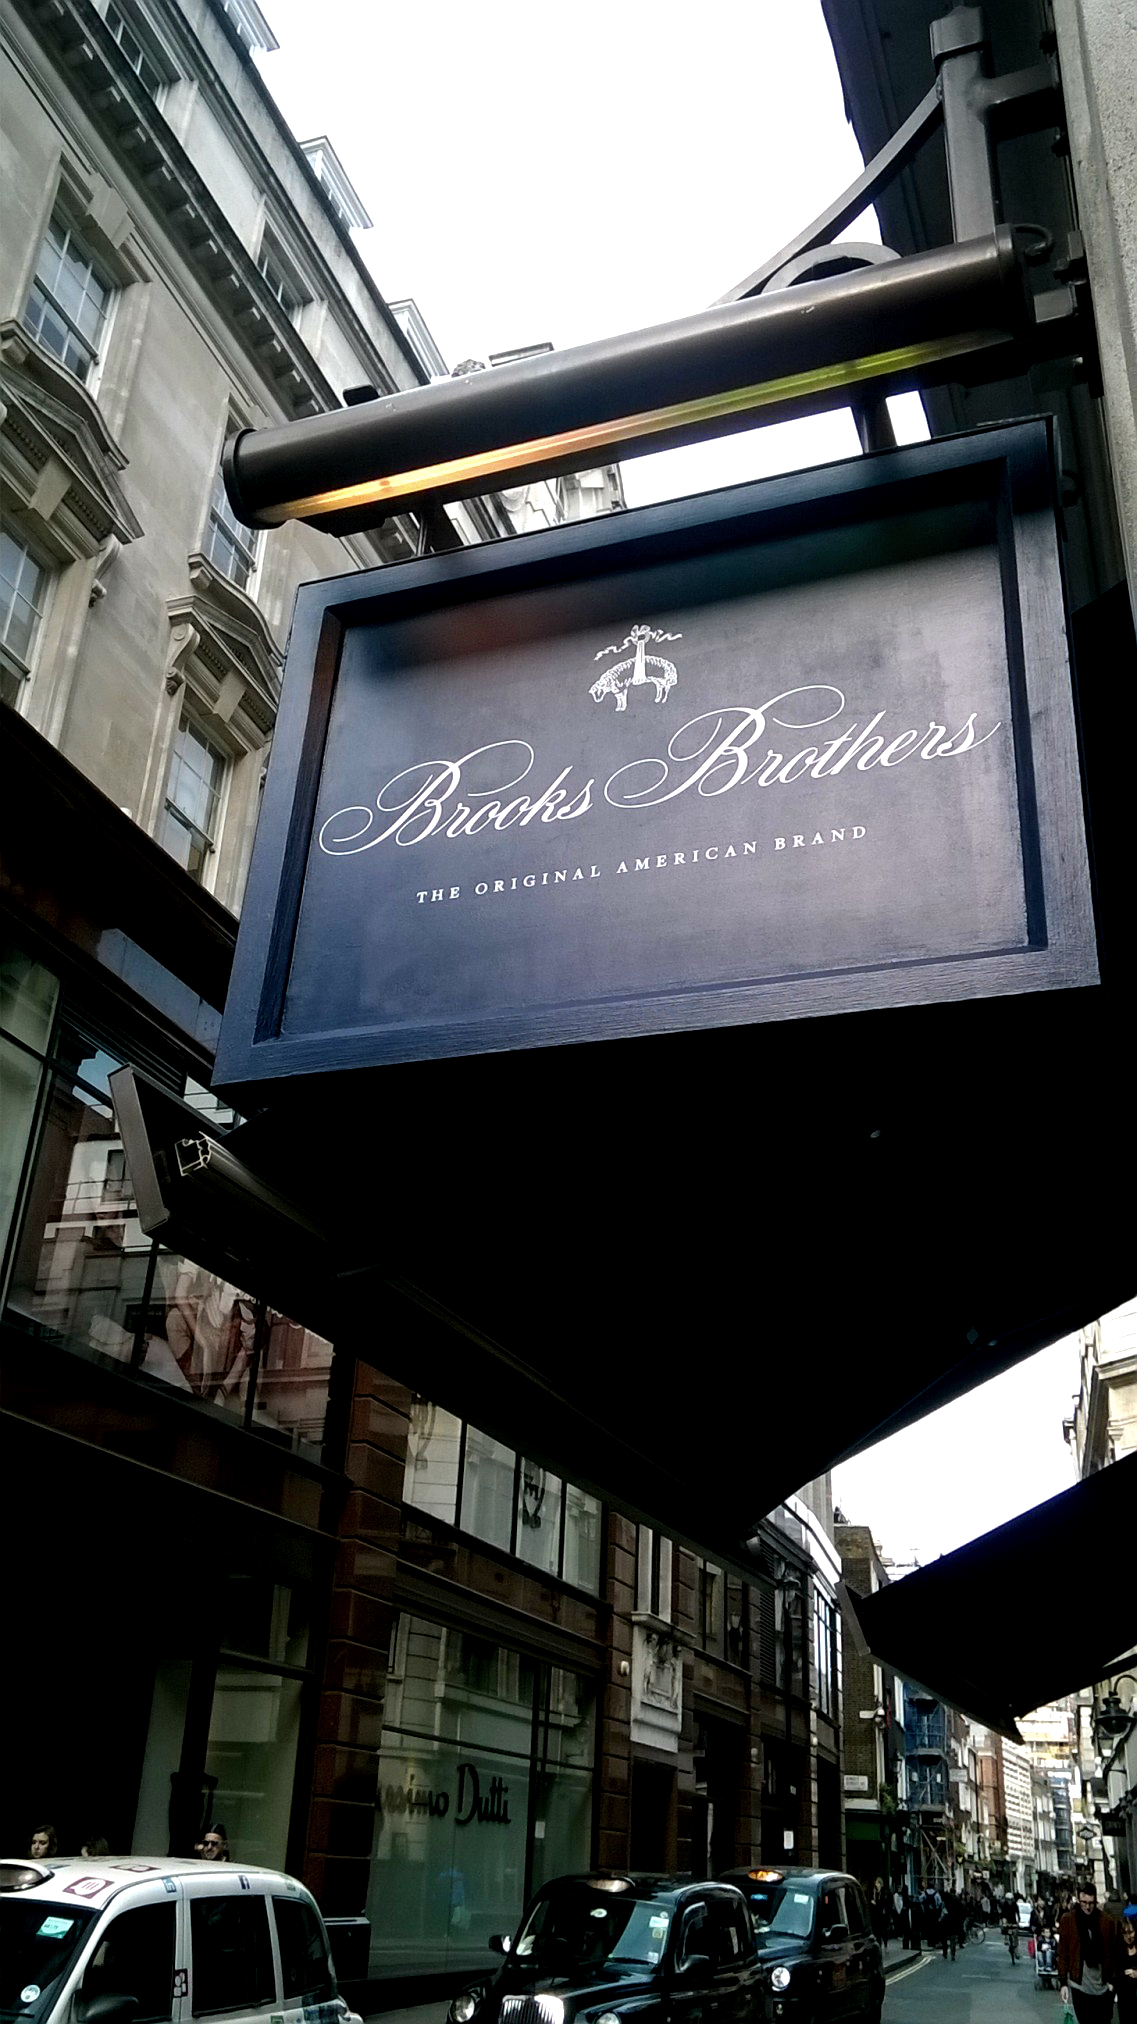 Illuminated Fascia Brooks Brothers Regent Street London E Signs ® installed sign www.e-signs.co.uk